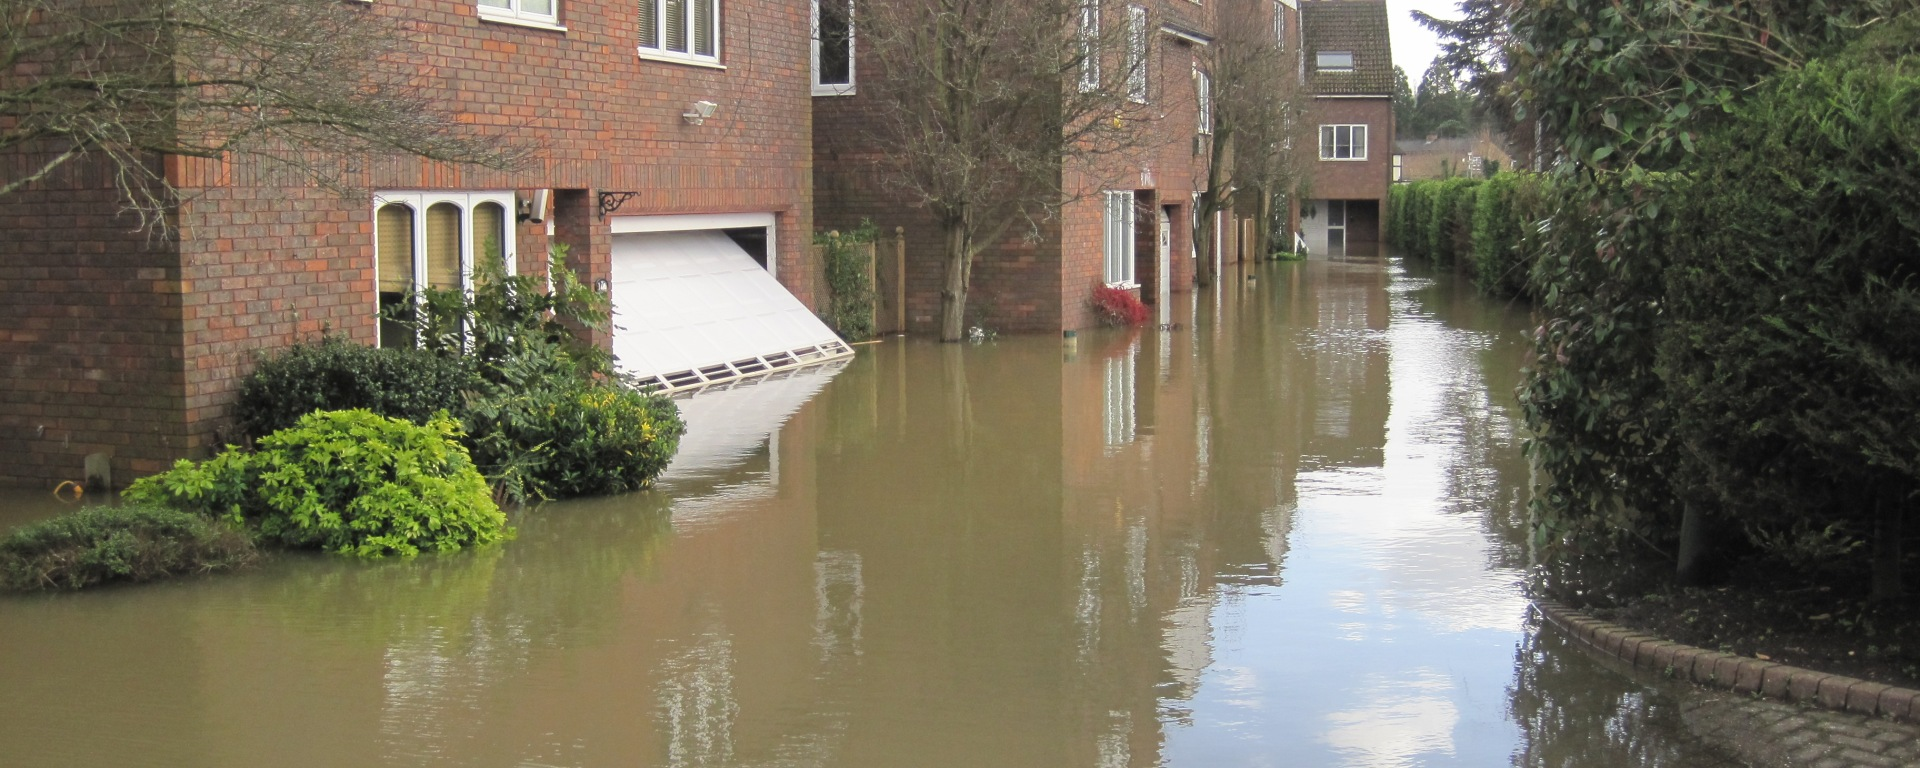 old windsor houses flooding